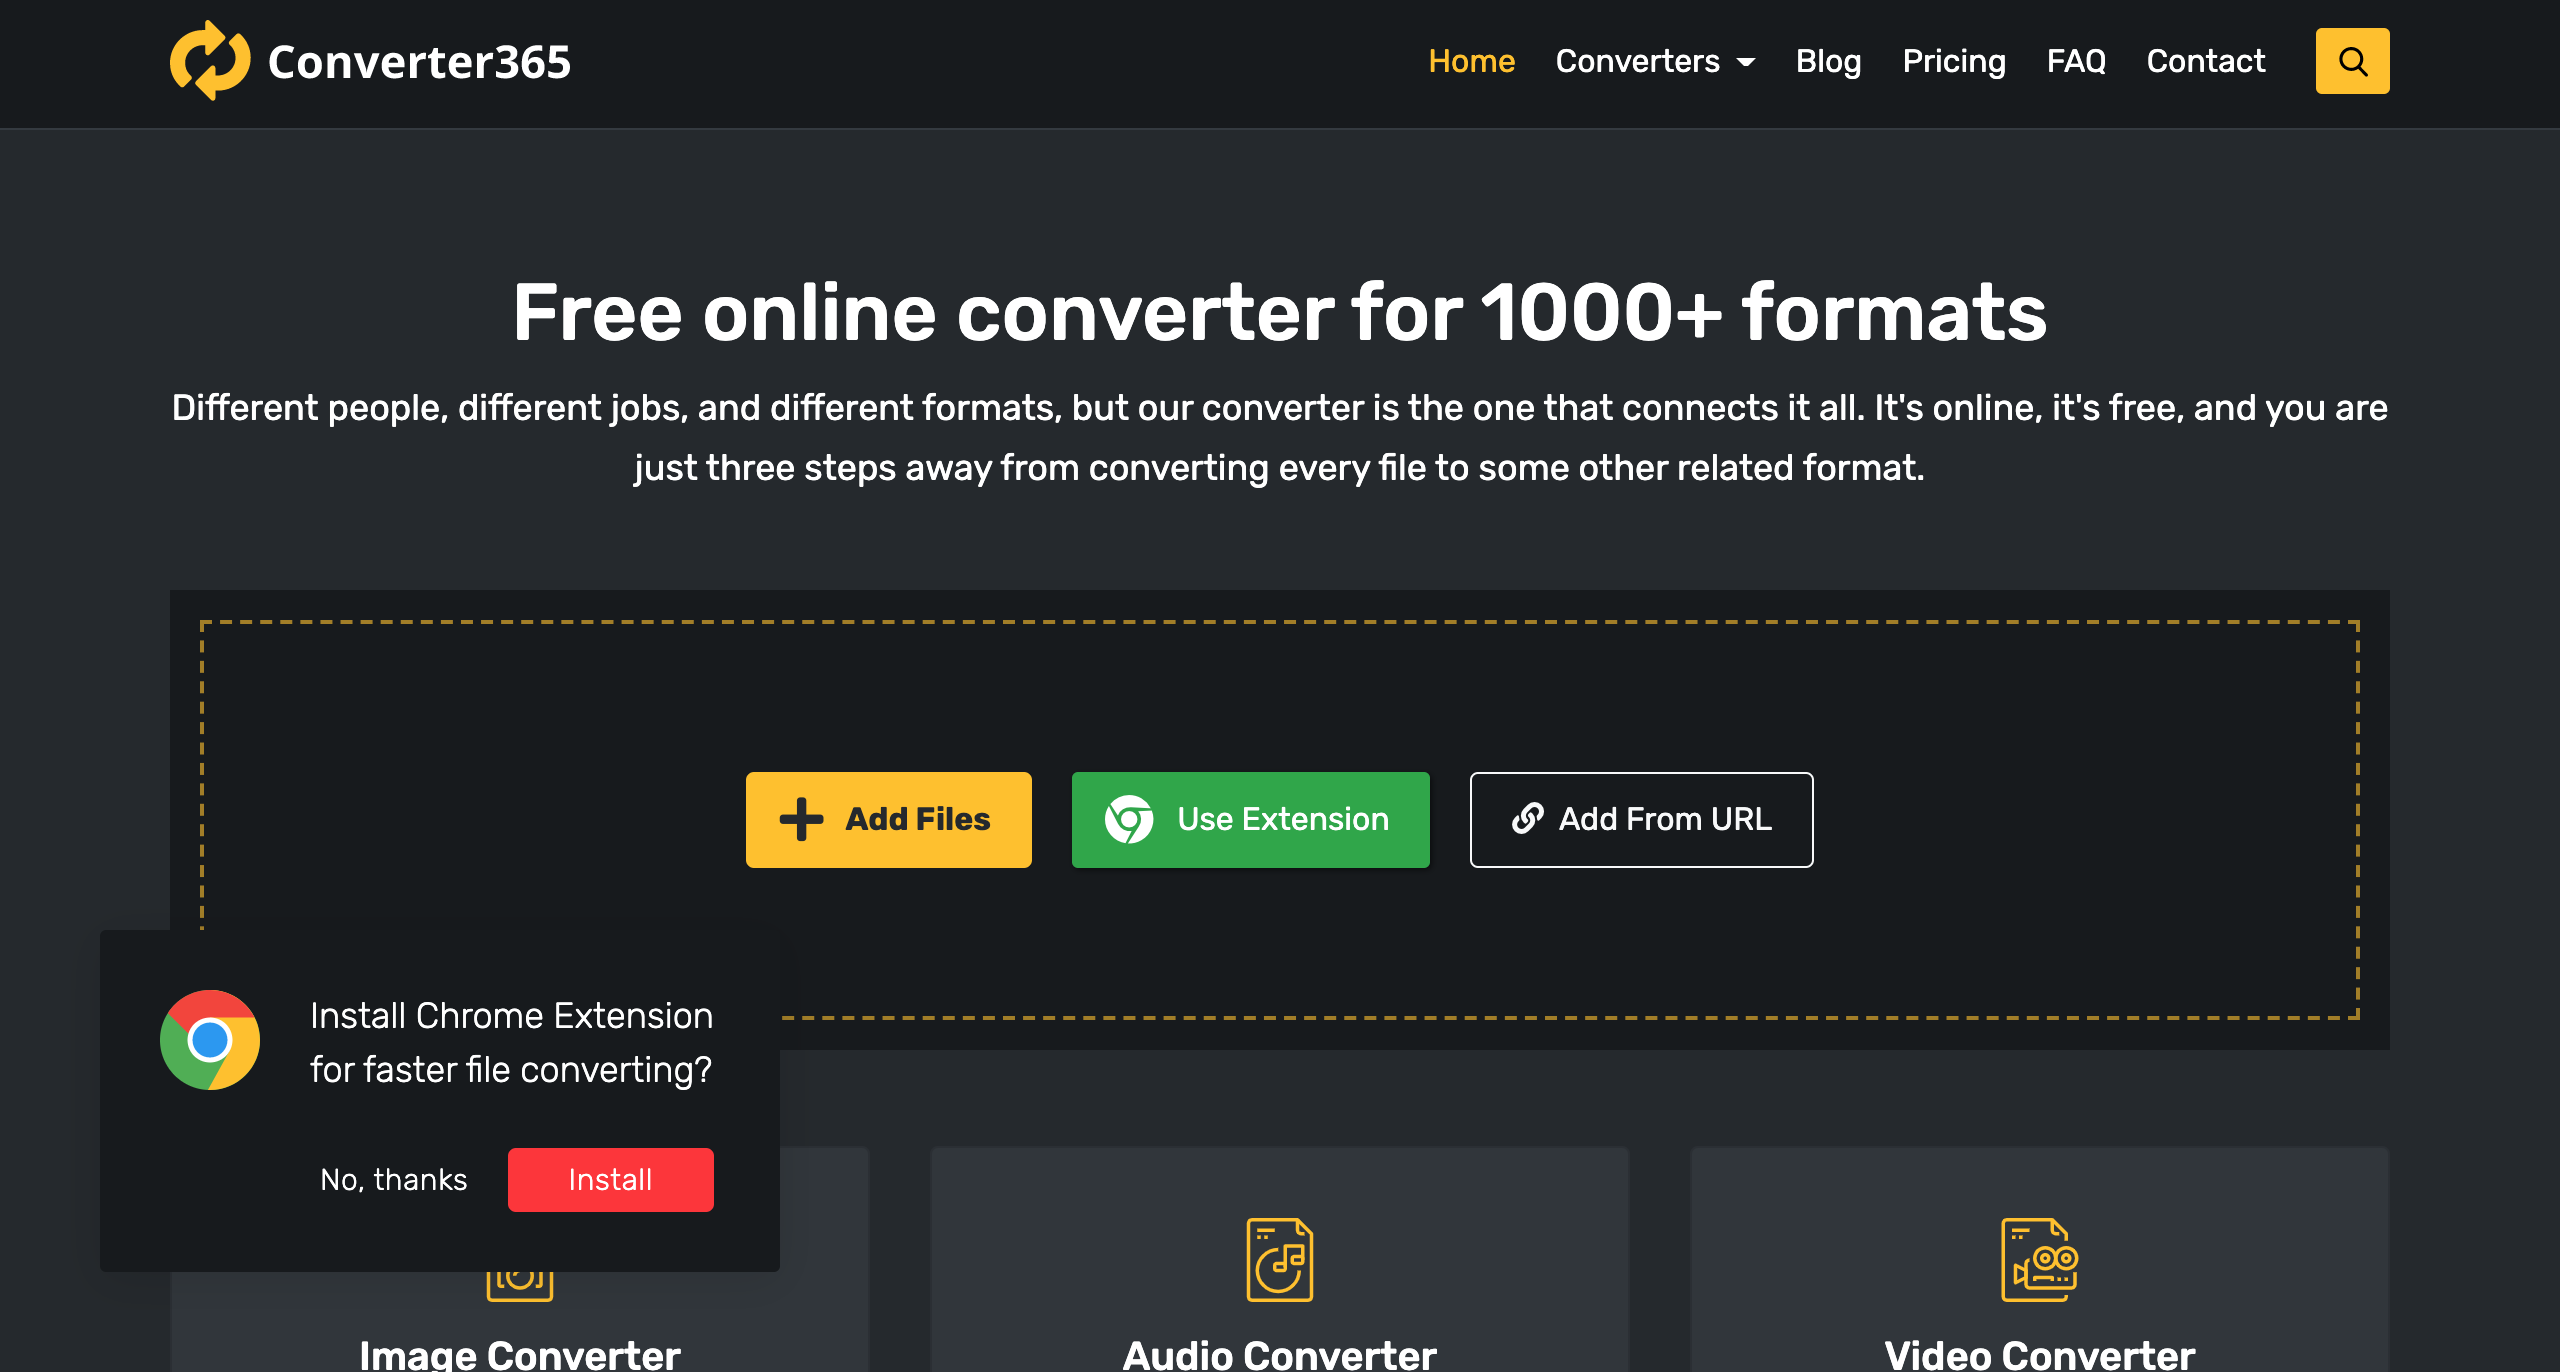 open every file format converter365